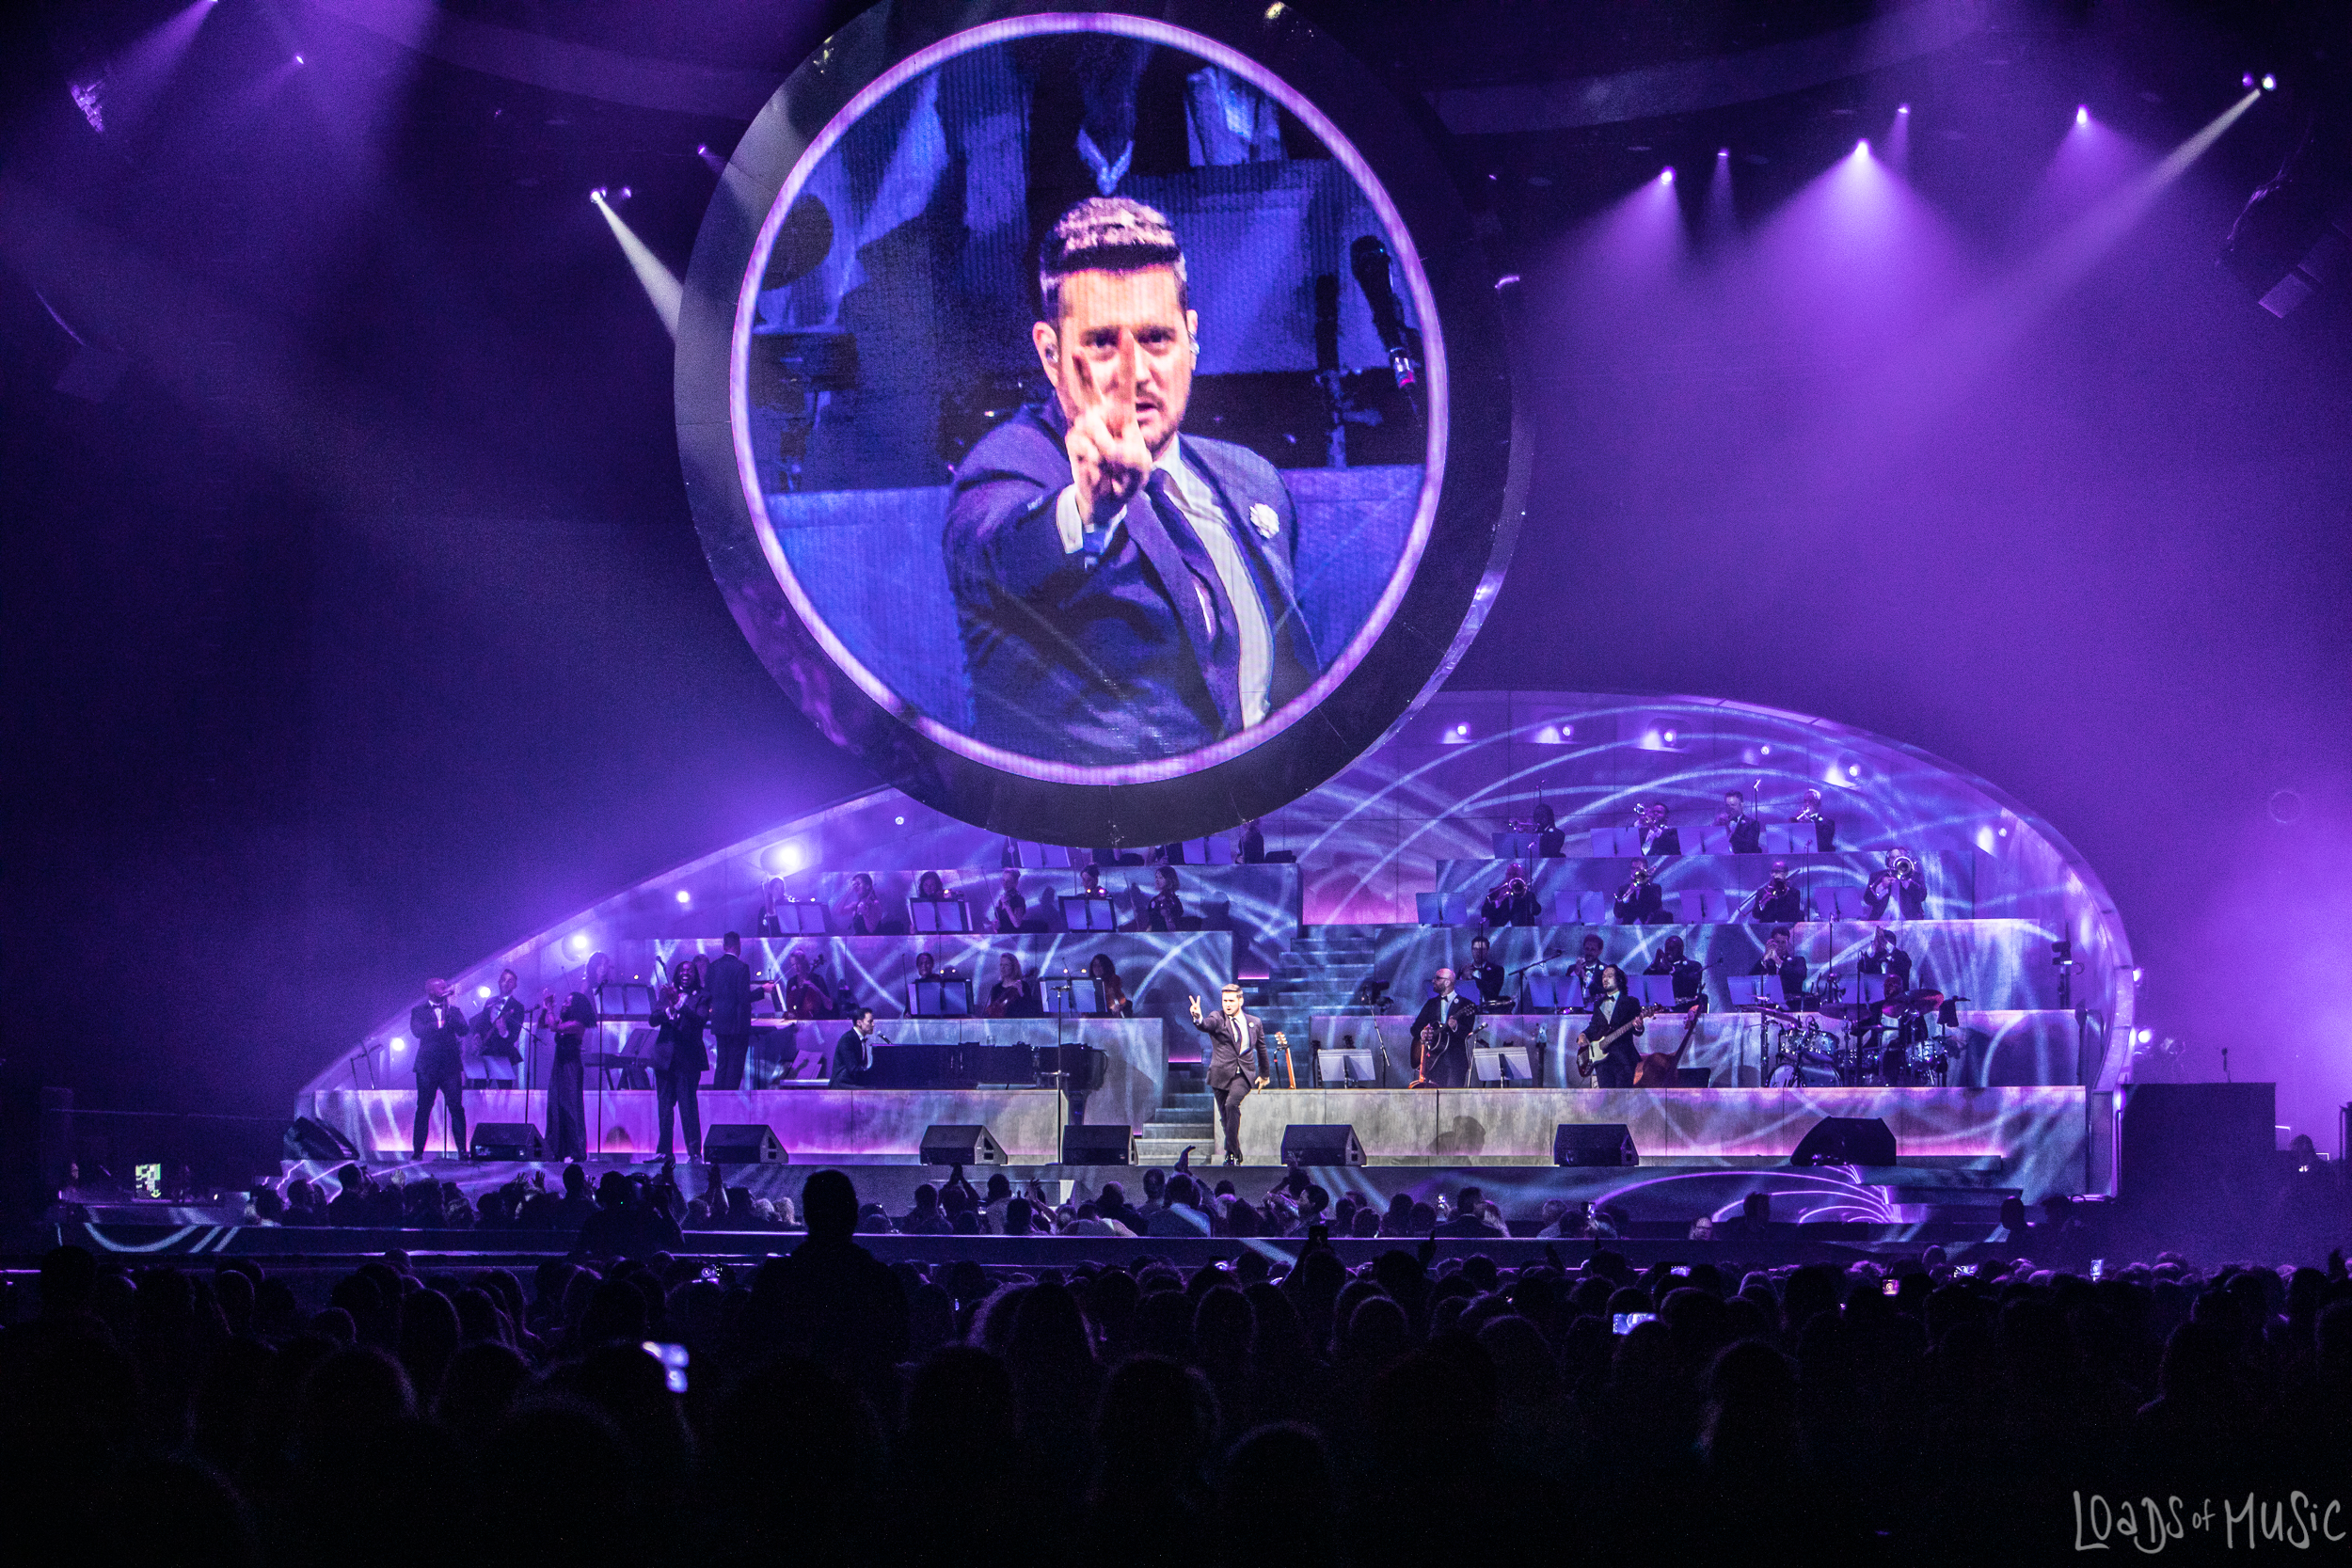 Michael_Buble_Hallenstadion_MB_6